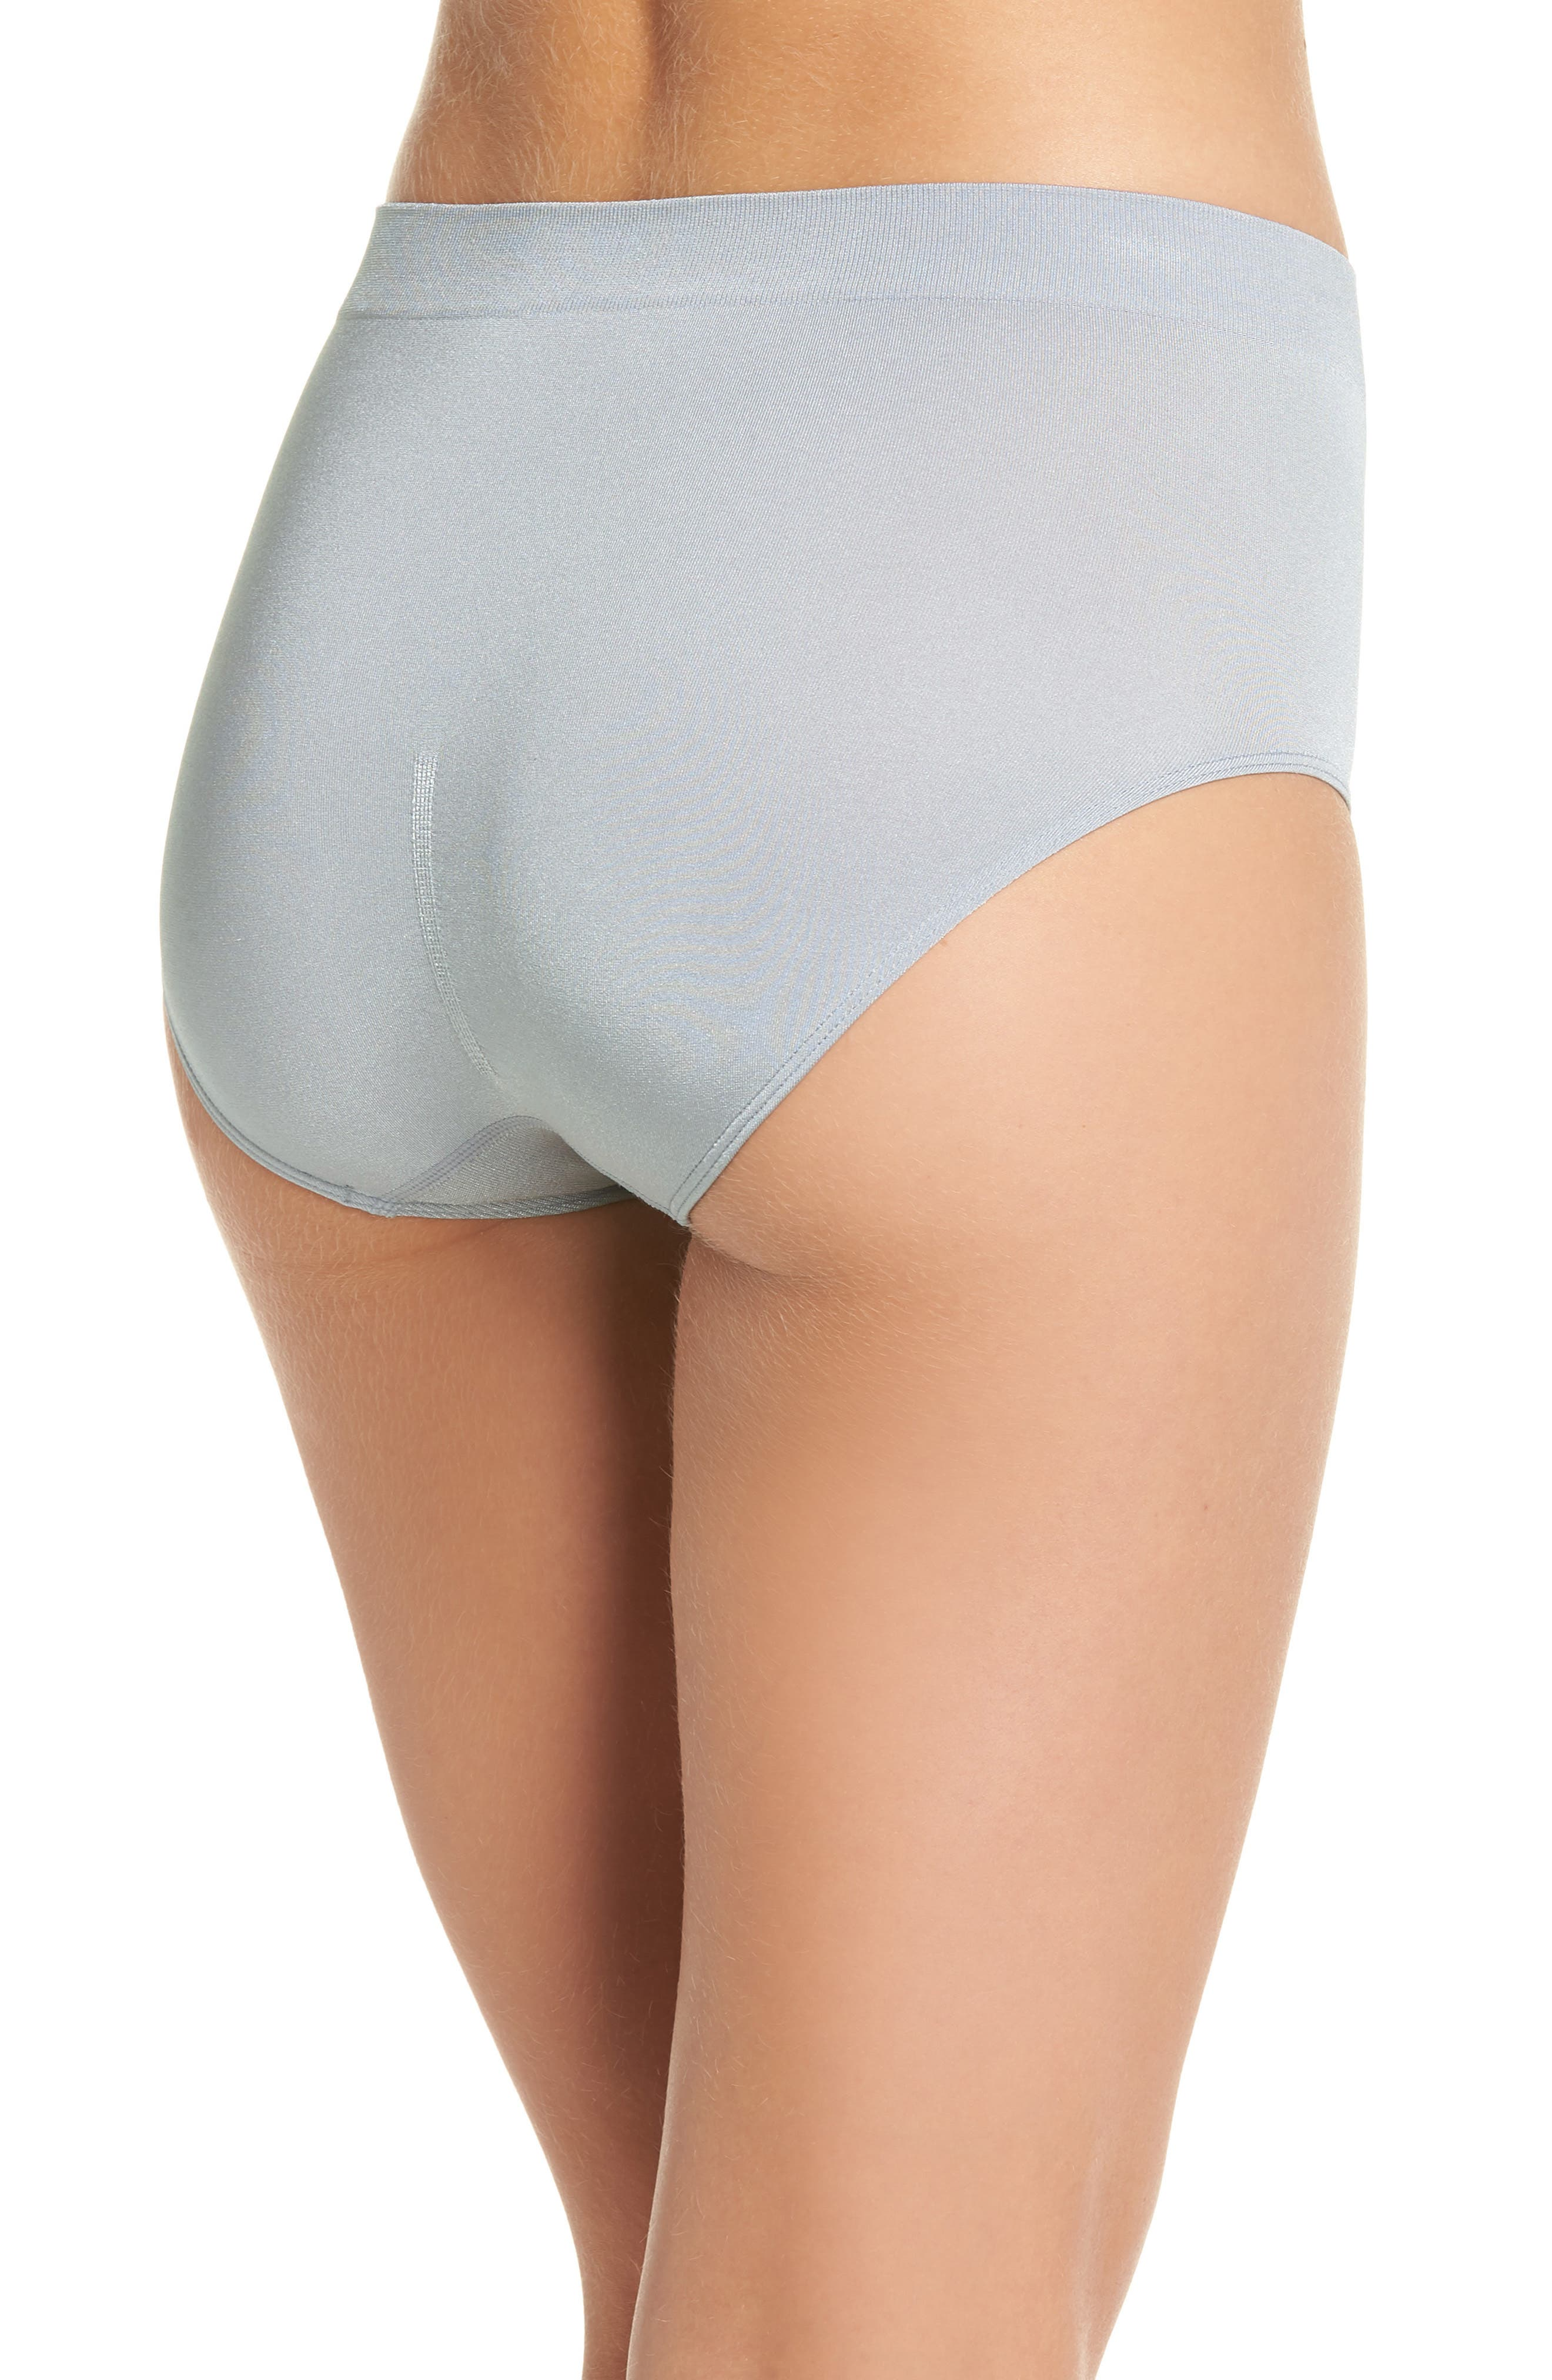 B Smooth Briefs,                             Alternate thumbnail 82, color,